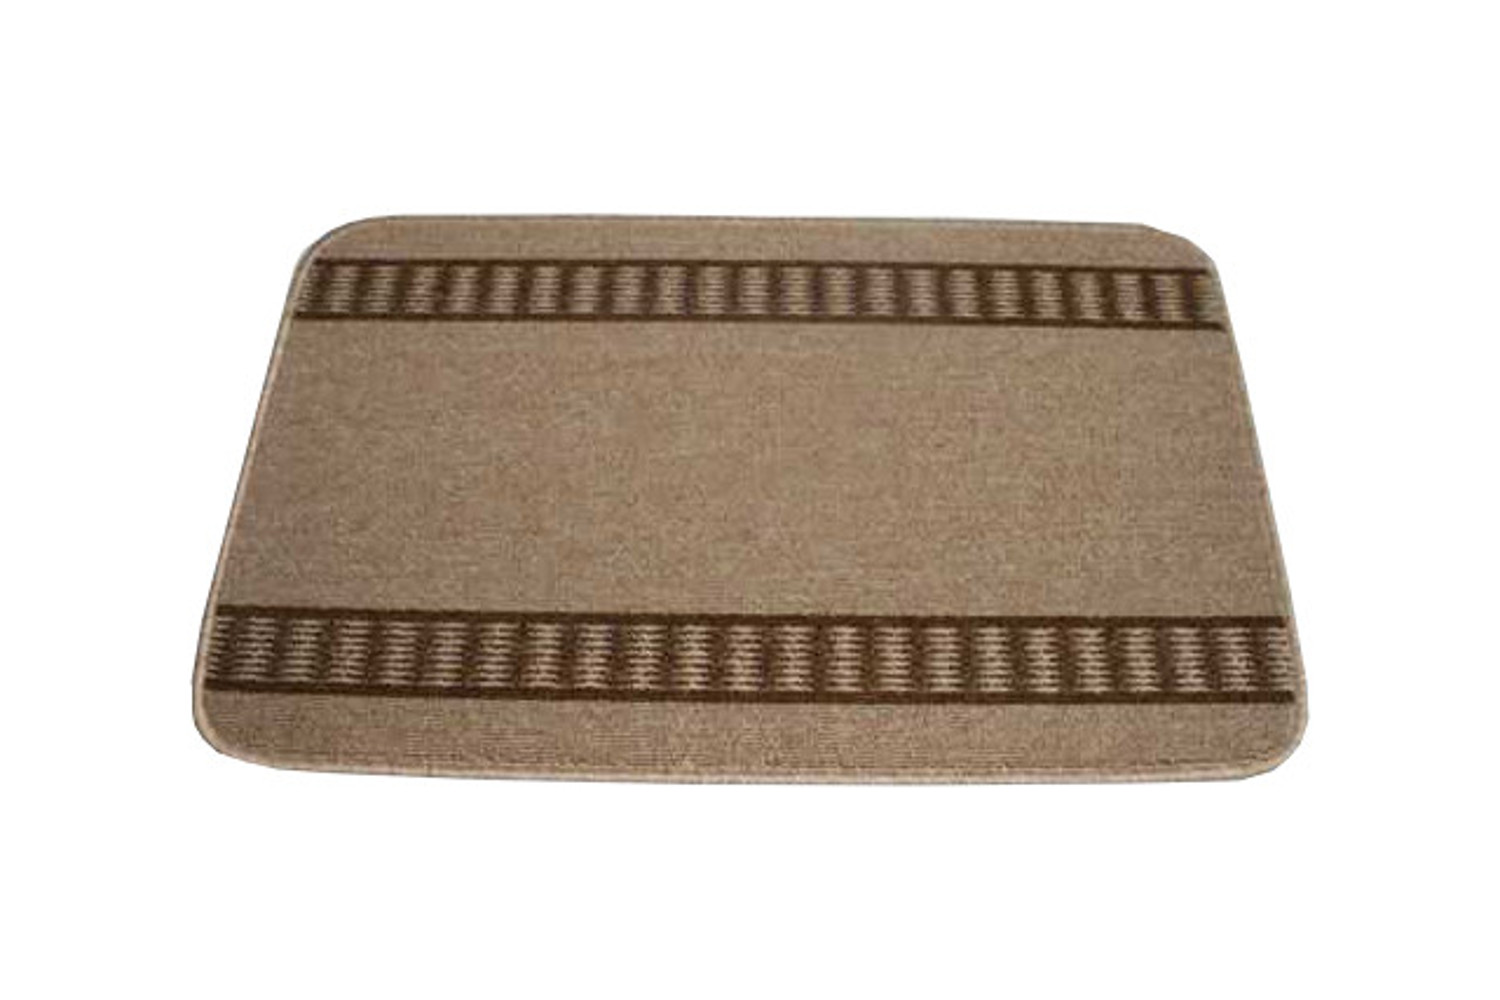 Athena Hardwearing Entrance Doormat Modern Anti Slip Washable Kitchen Rug Runner Ebay